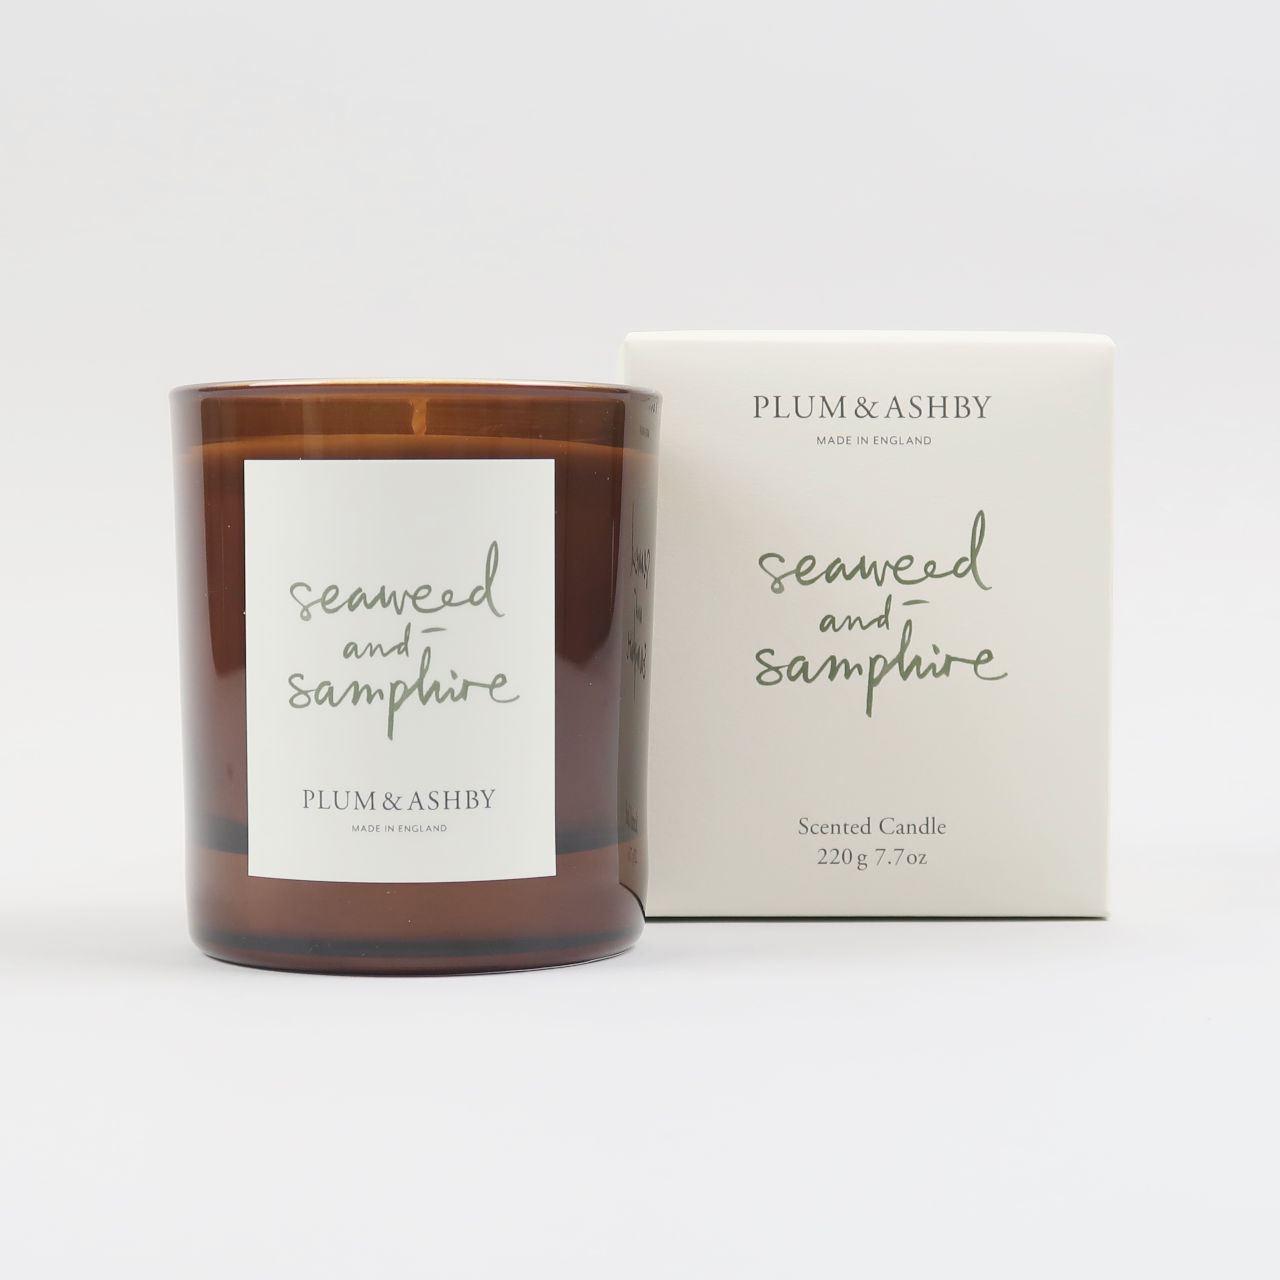 Seaweed & Samphire Scented Candle - Large